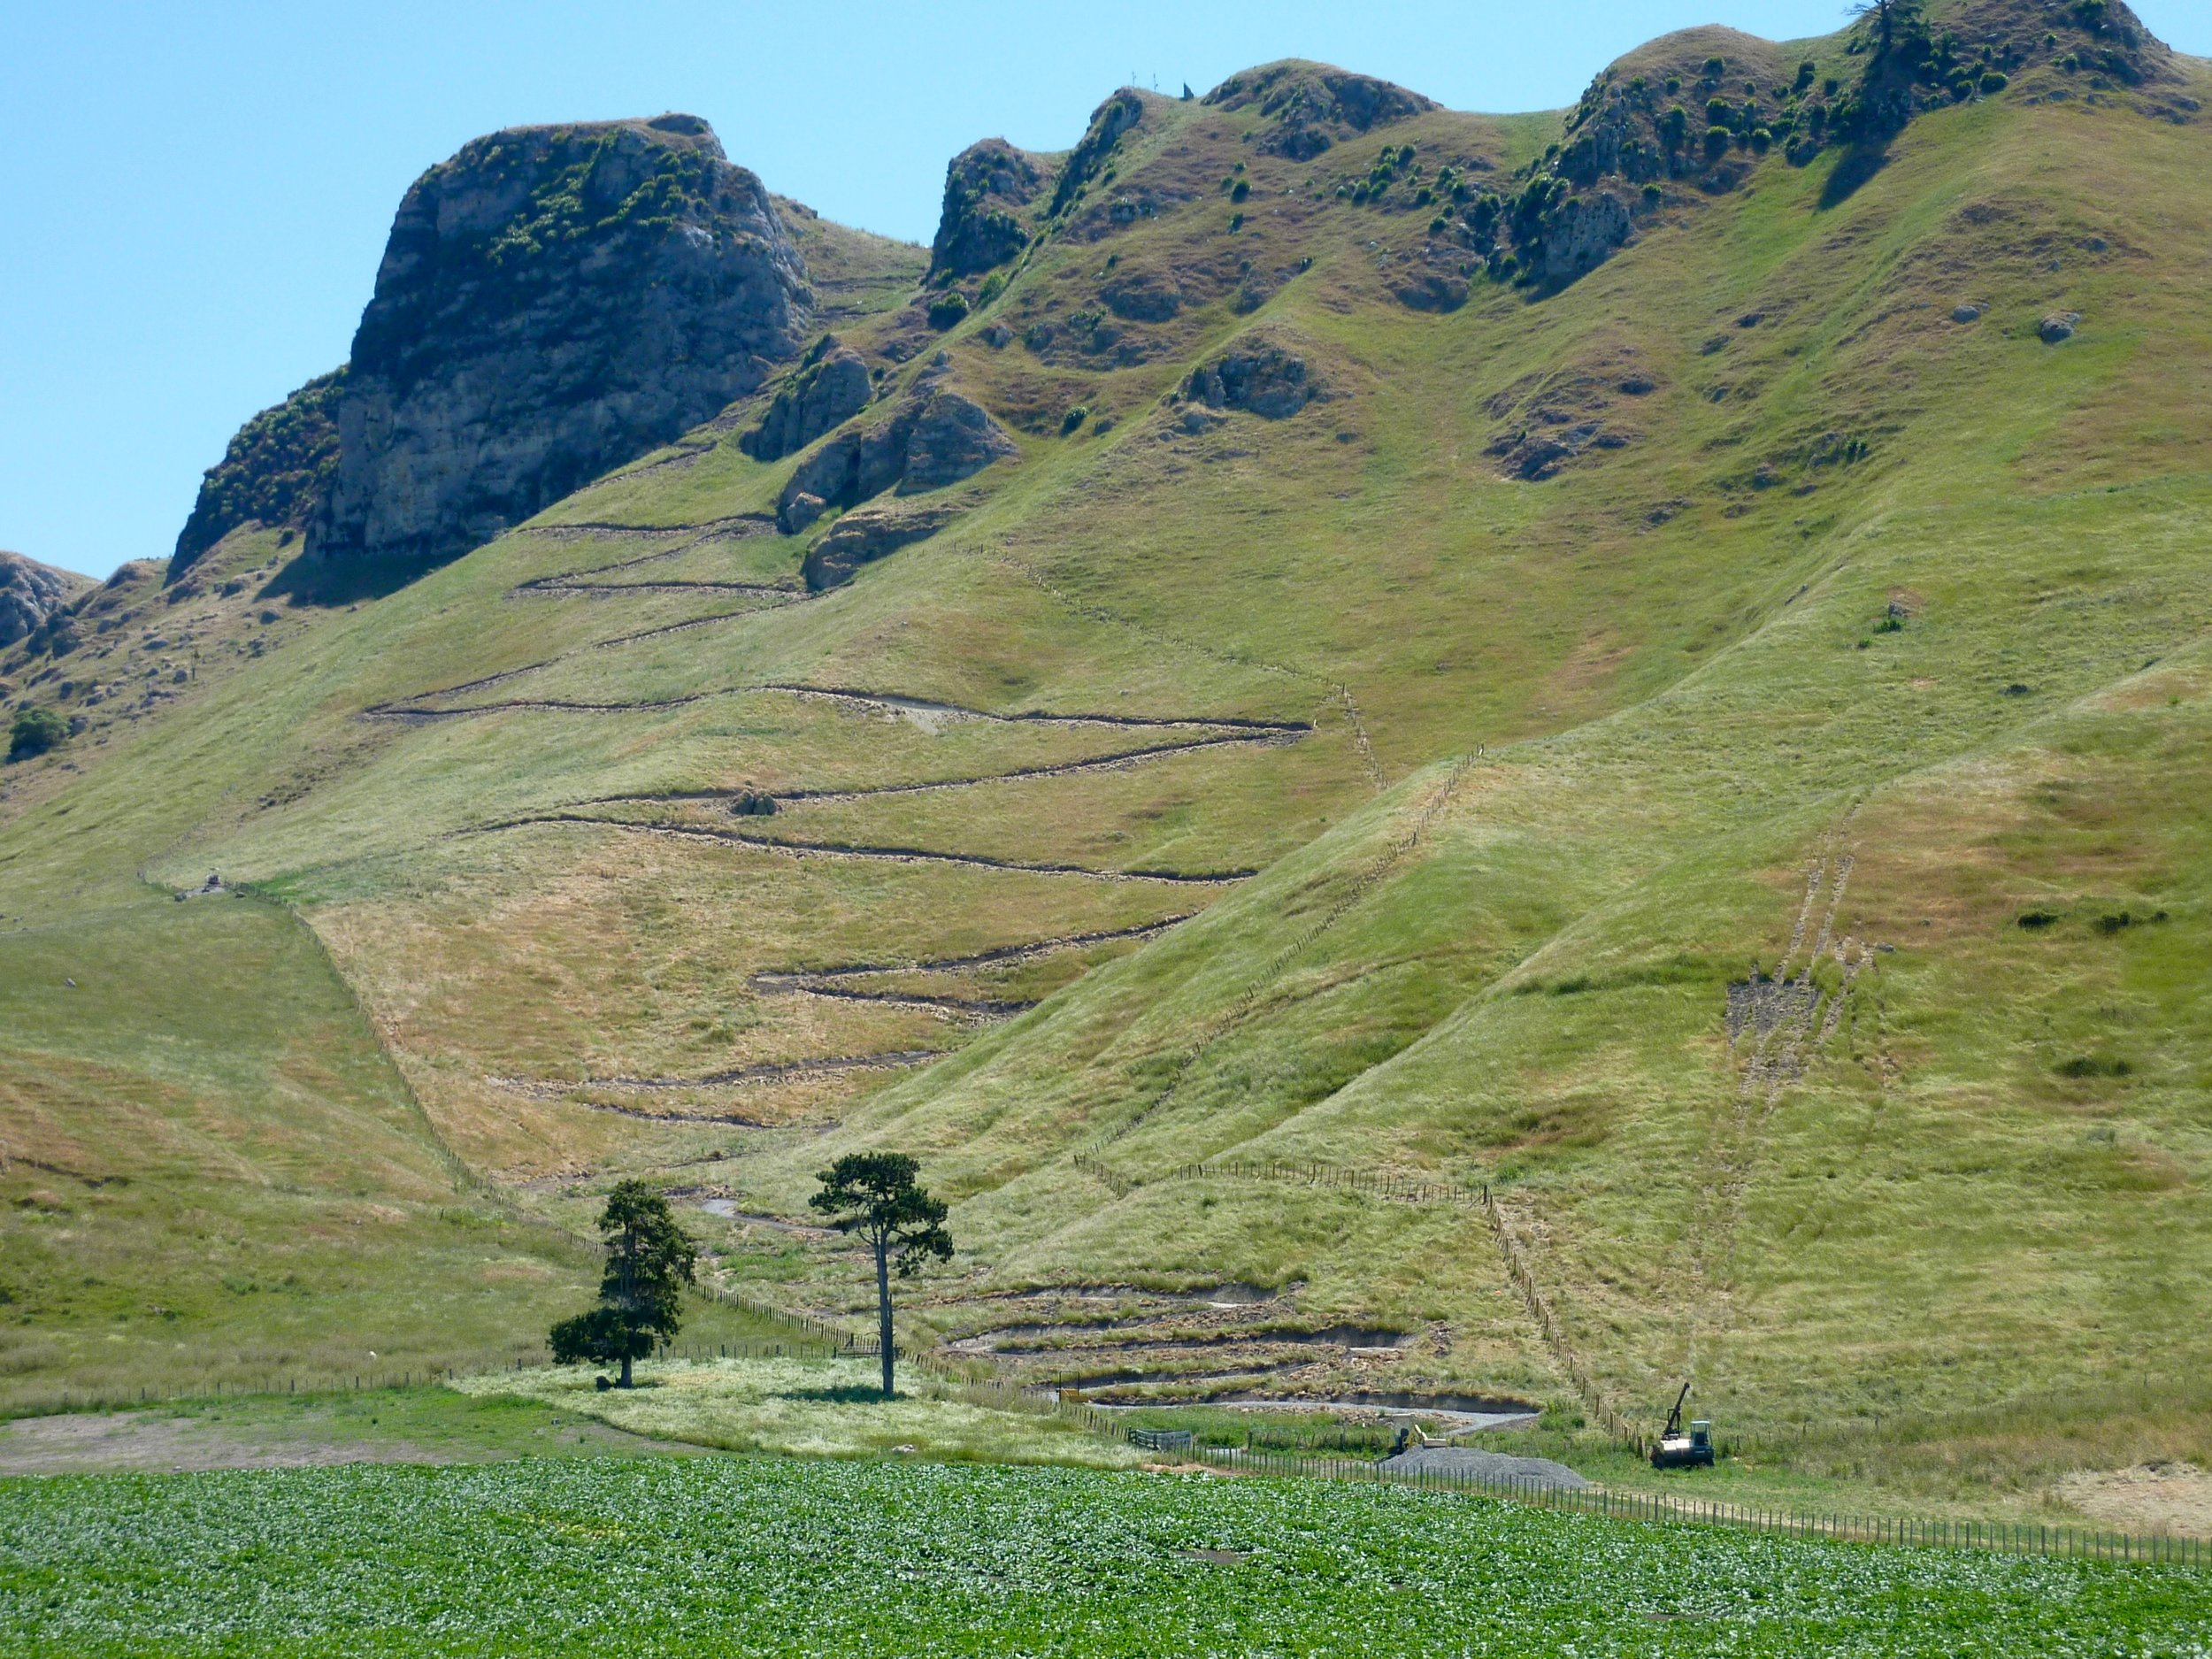 The walking track carved into Te Mata Peak.